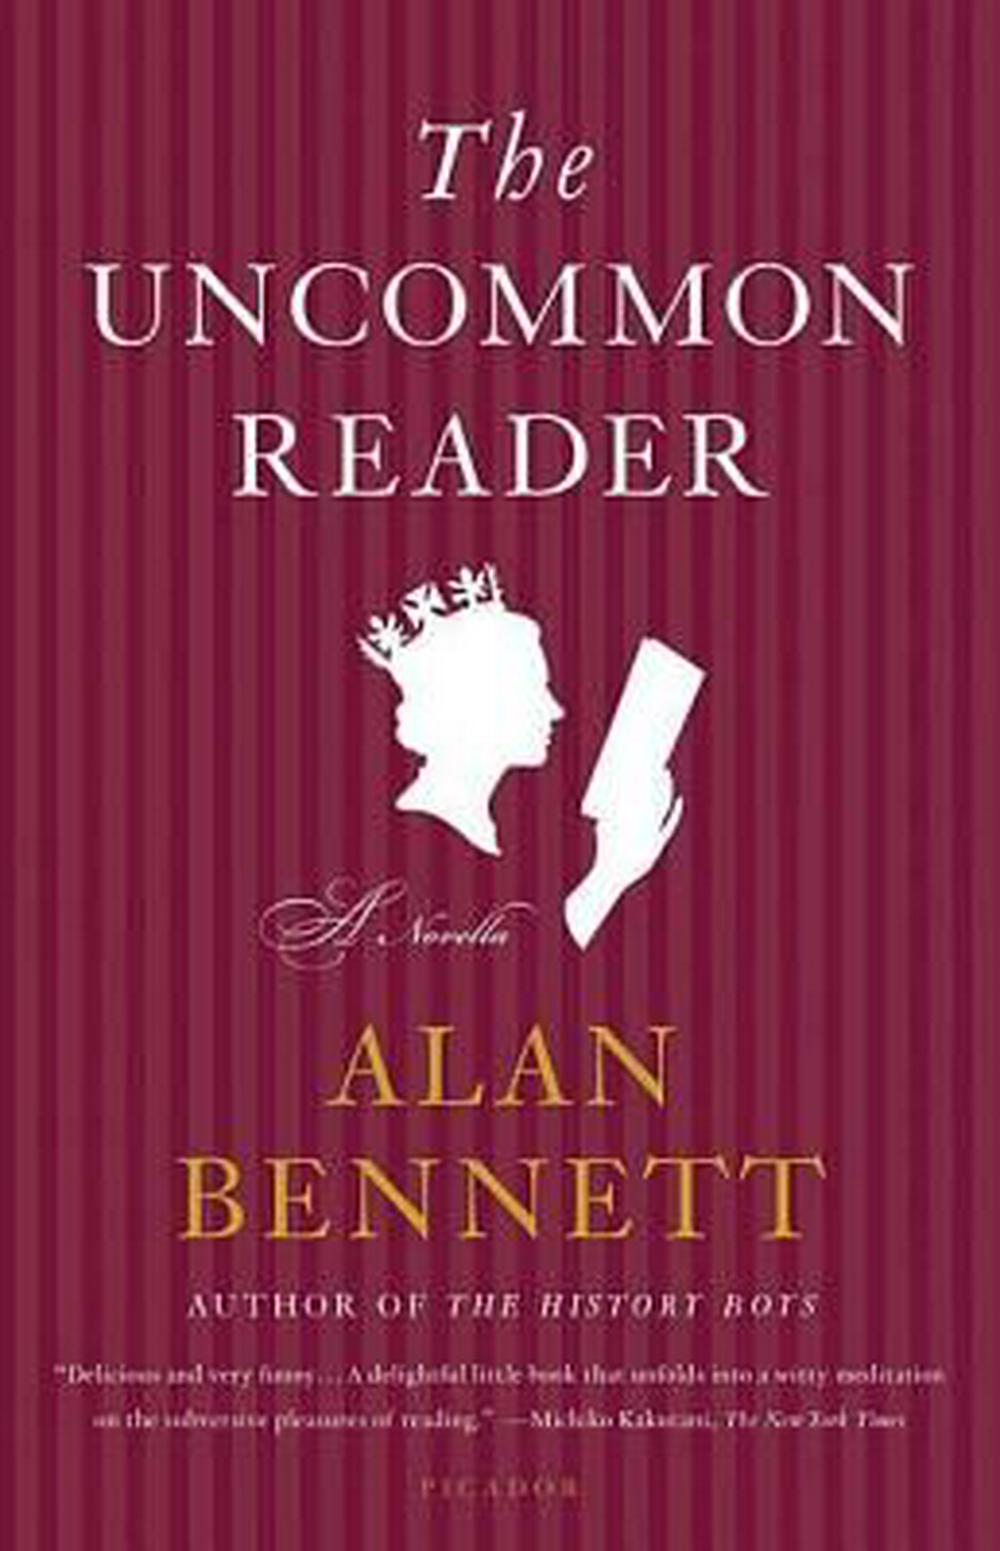 The Uncommon Reader by Alan Bennett, ISBN: 9780312427641